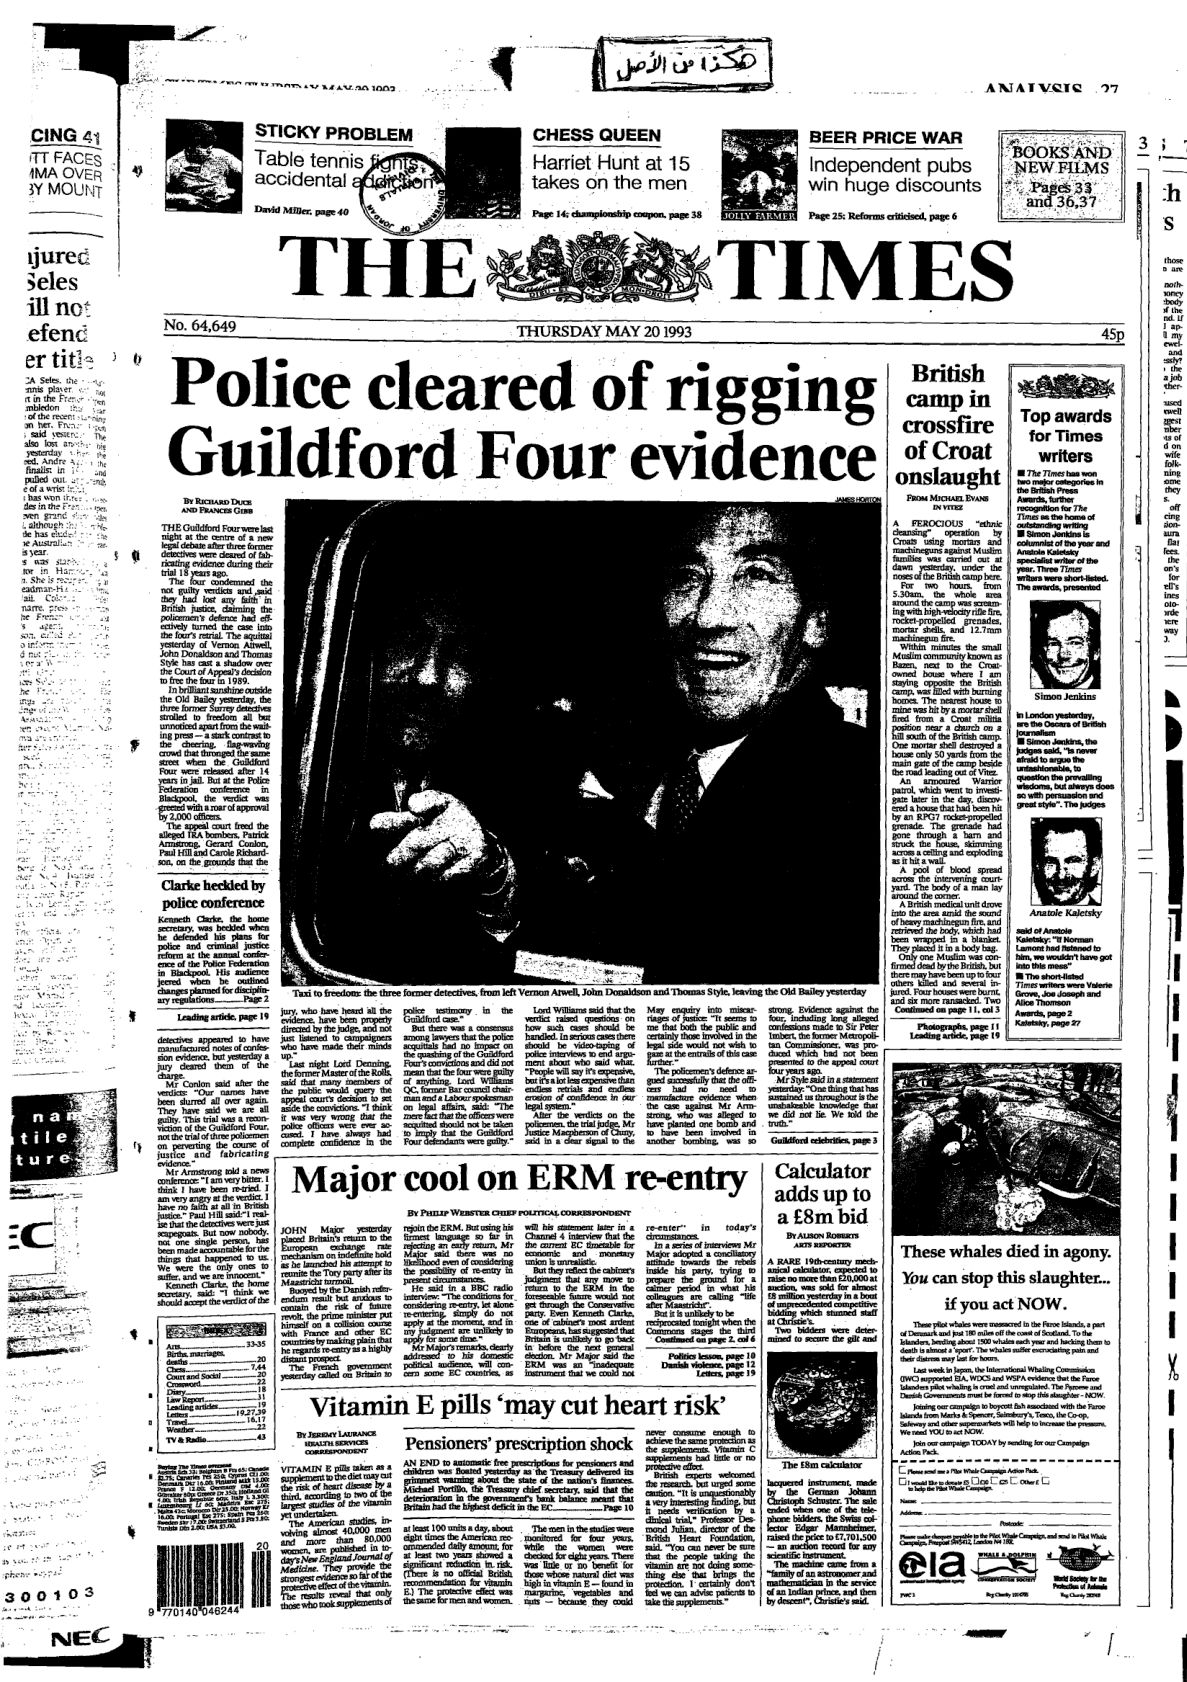 The Times Issue No. 64649. 1993-05-20, UK